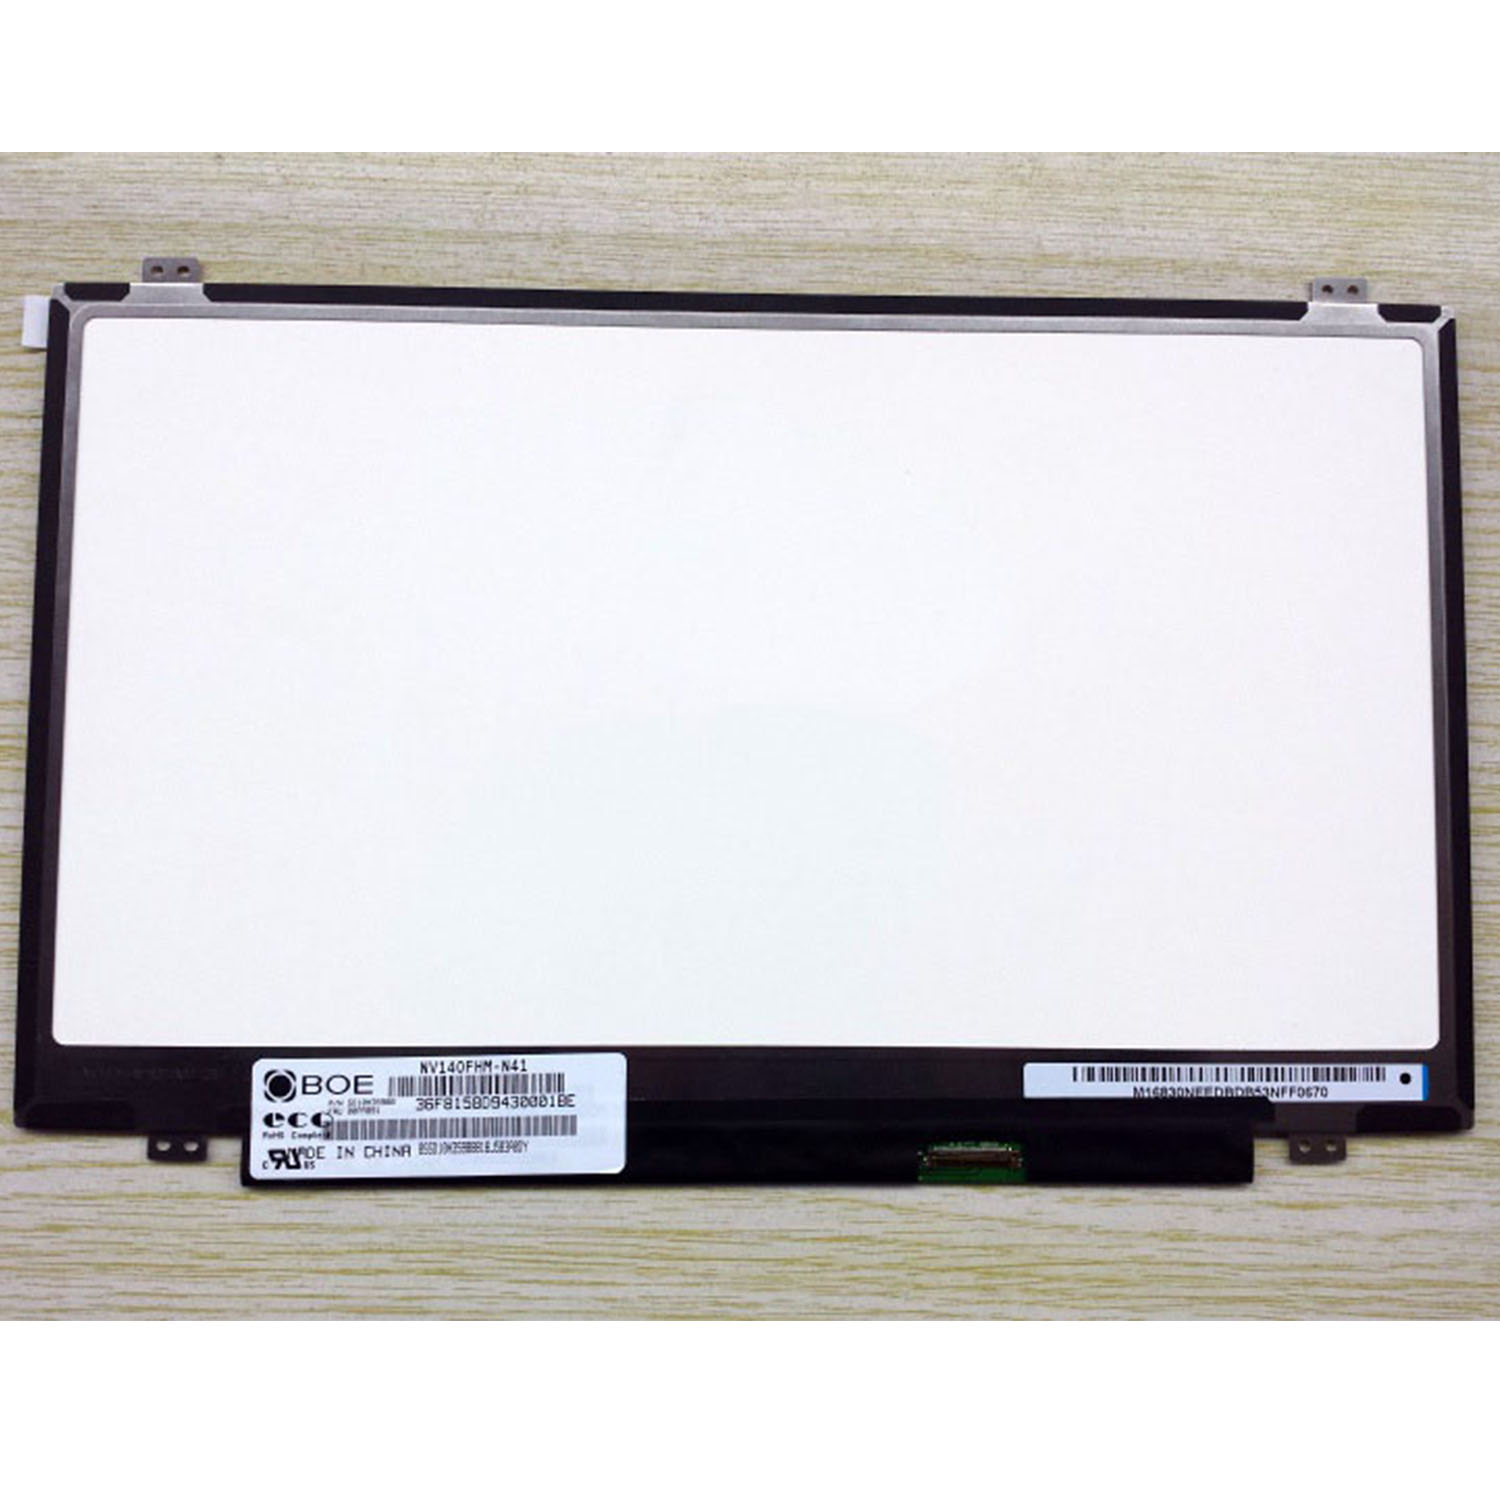 IPS Screen For BOE NV140FHM N41 LED Display LCD Screen Matrix for Laptop 14 0 FHD